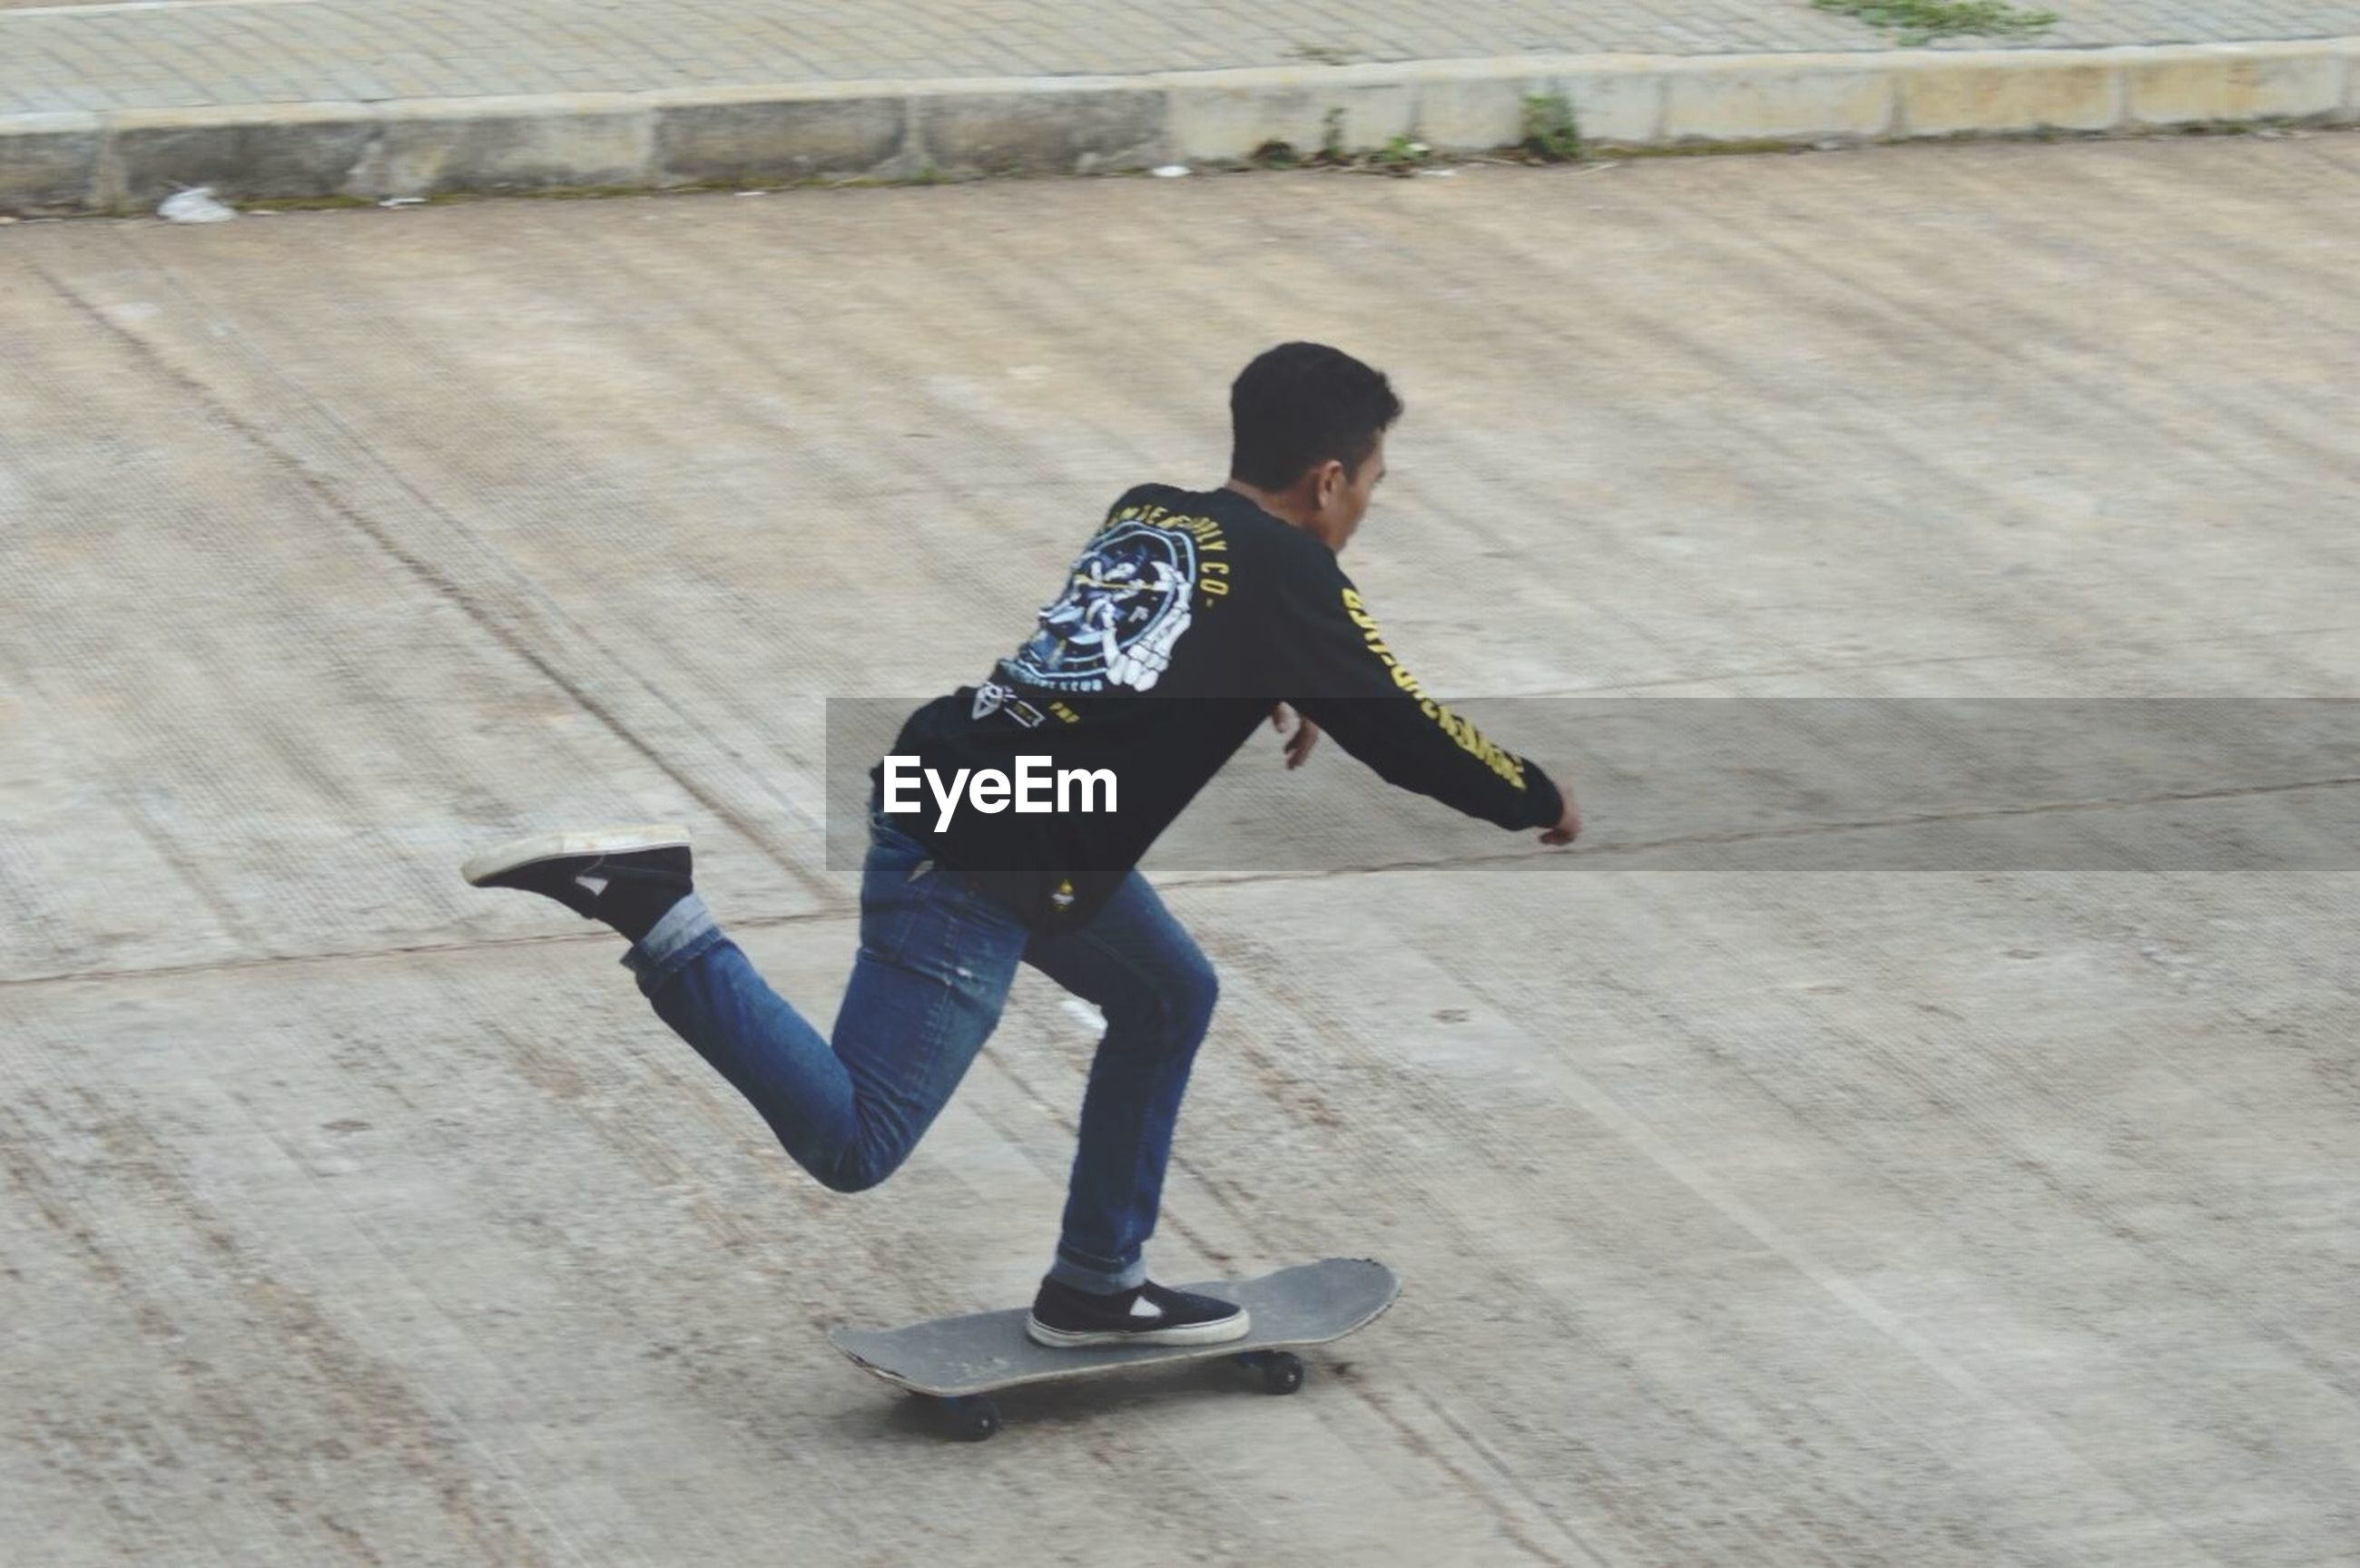 skateboard, full length, teenager, one teenage boy only, youth culture, child, skill, one person, childhood, casual clothing, leisure activity, skateboard park, fun, skating, motion, sport, real people, people, jumping, stunt, sports ramp, excitement, happiness, cheerful, day, outdoors, digital native